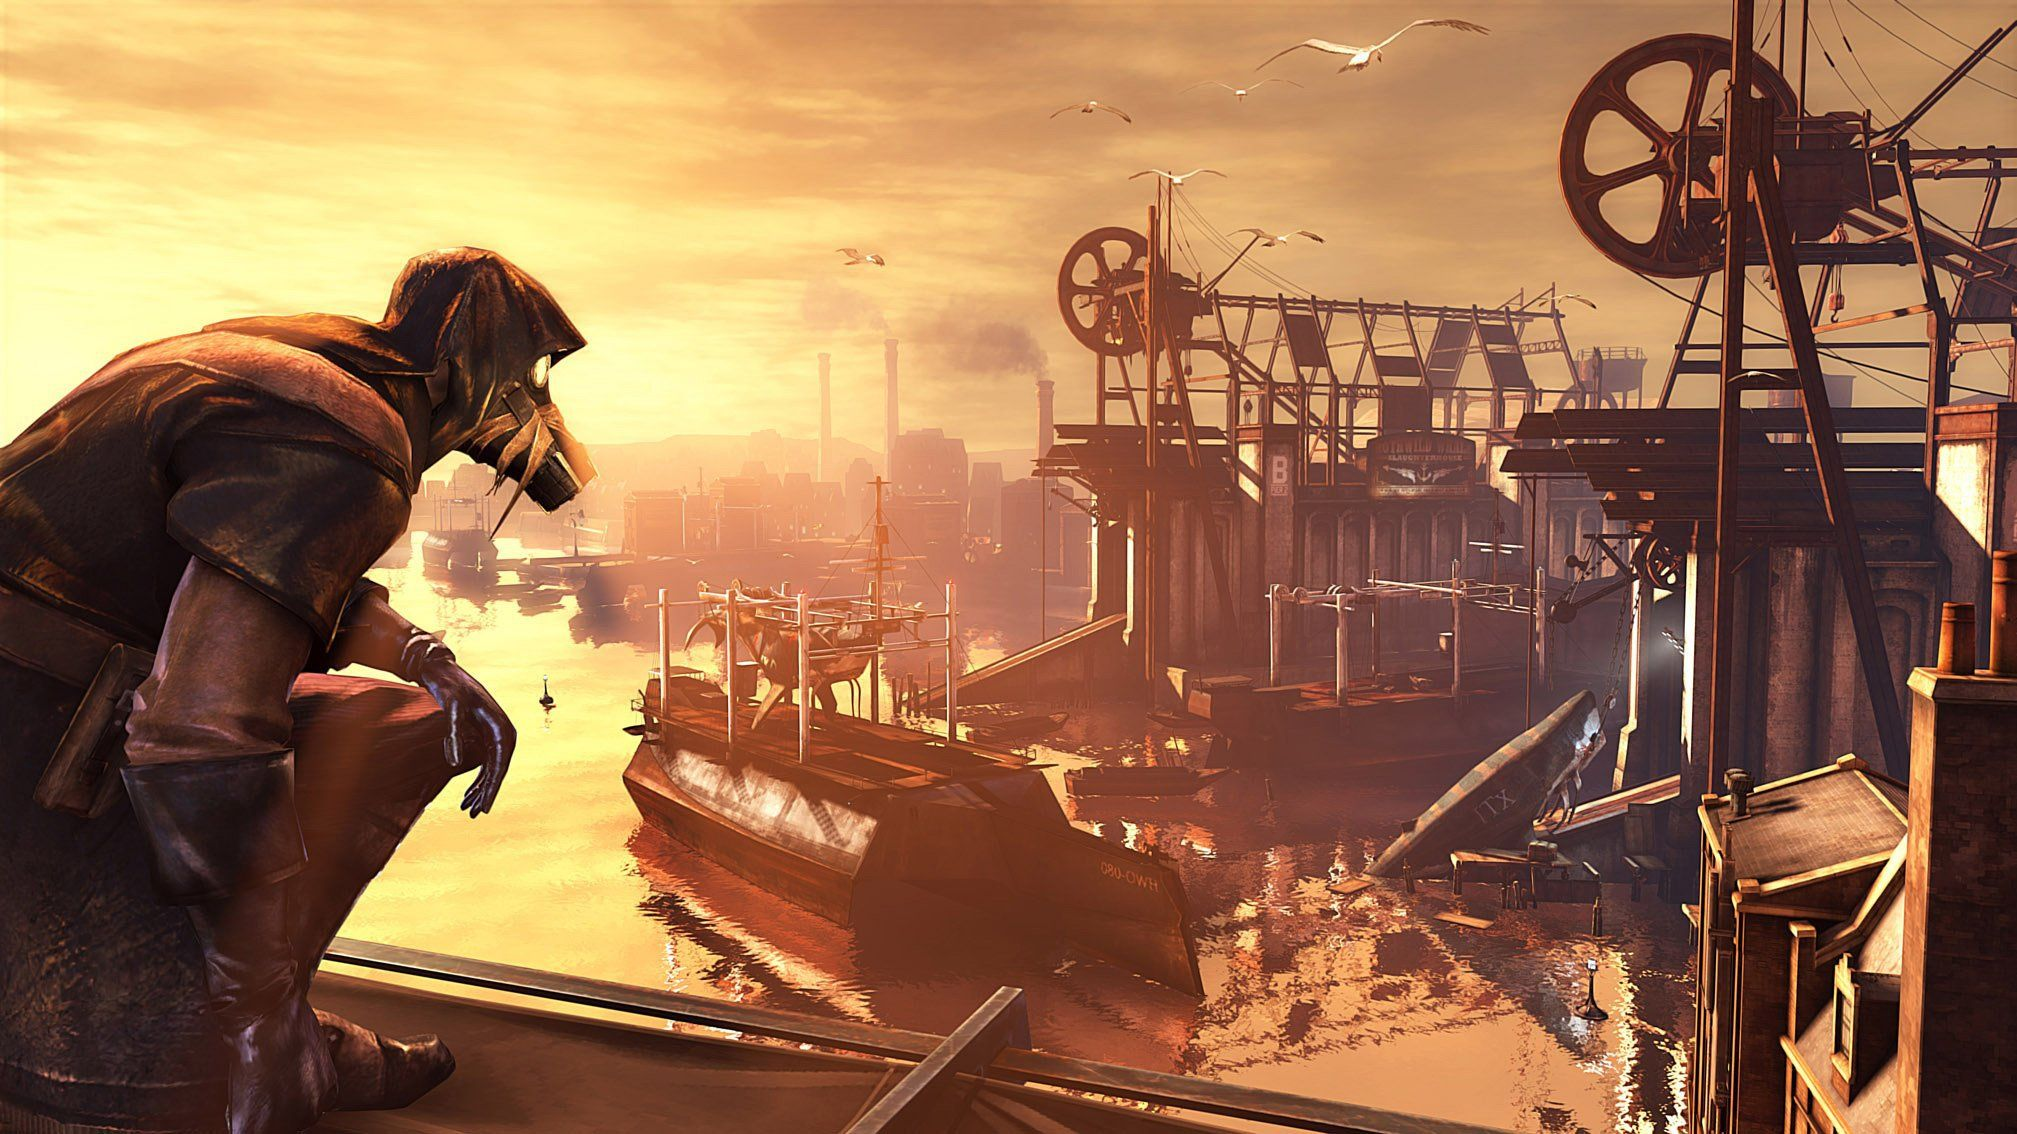 Dishonored Wallpapers In Ultra Hd K 19201200 Dishonored 2